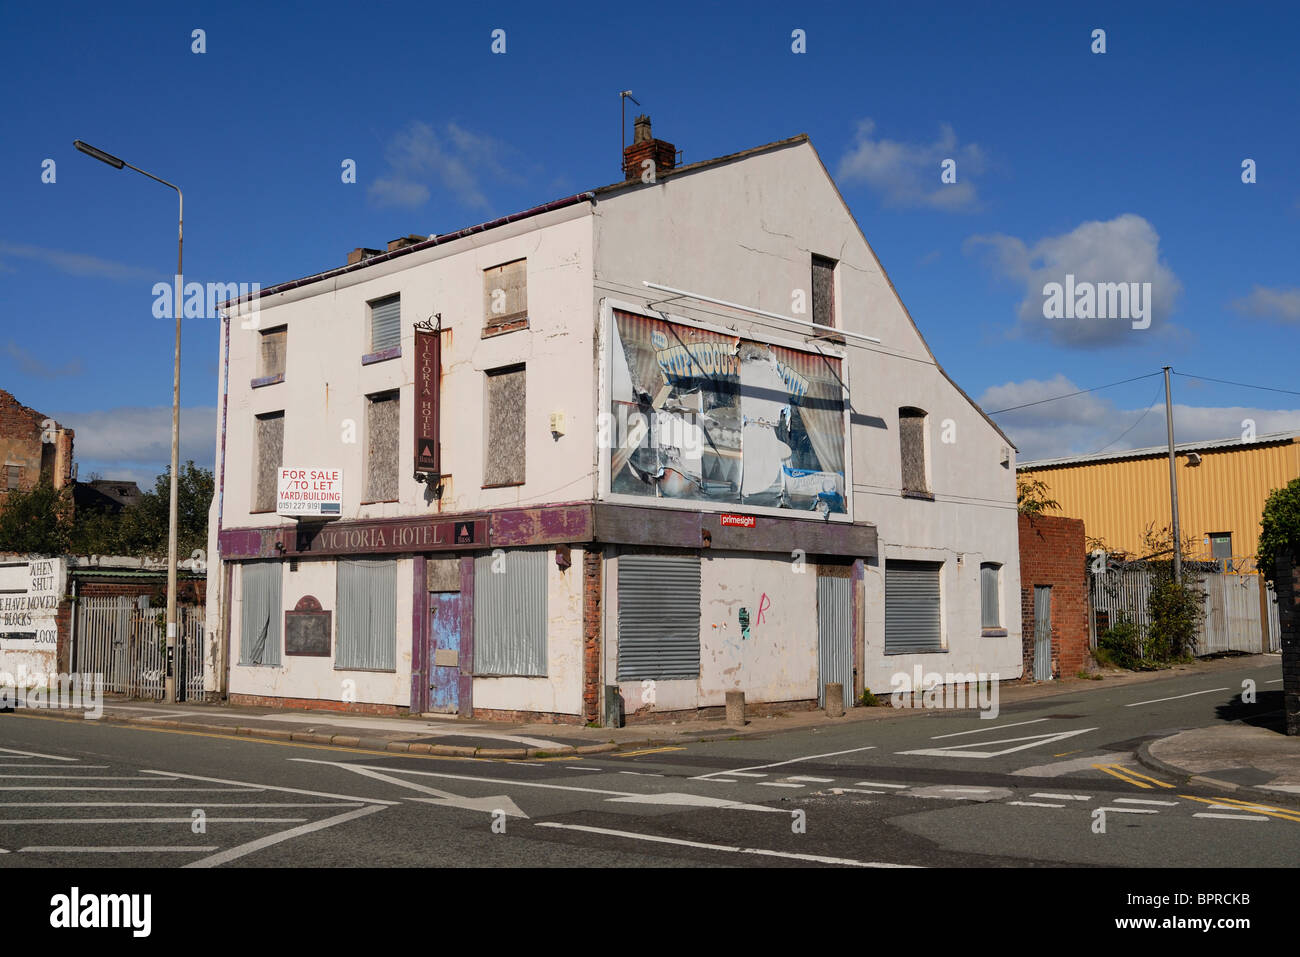 The dilapidated Victoria Hotel in Regent Road, the Dock Road which runs alongside Liverpool Docks. - Stock Image